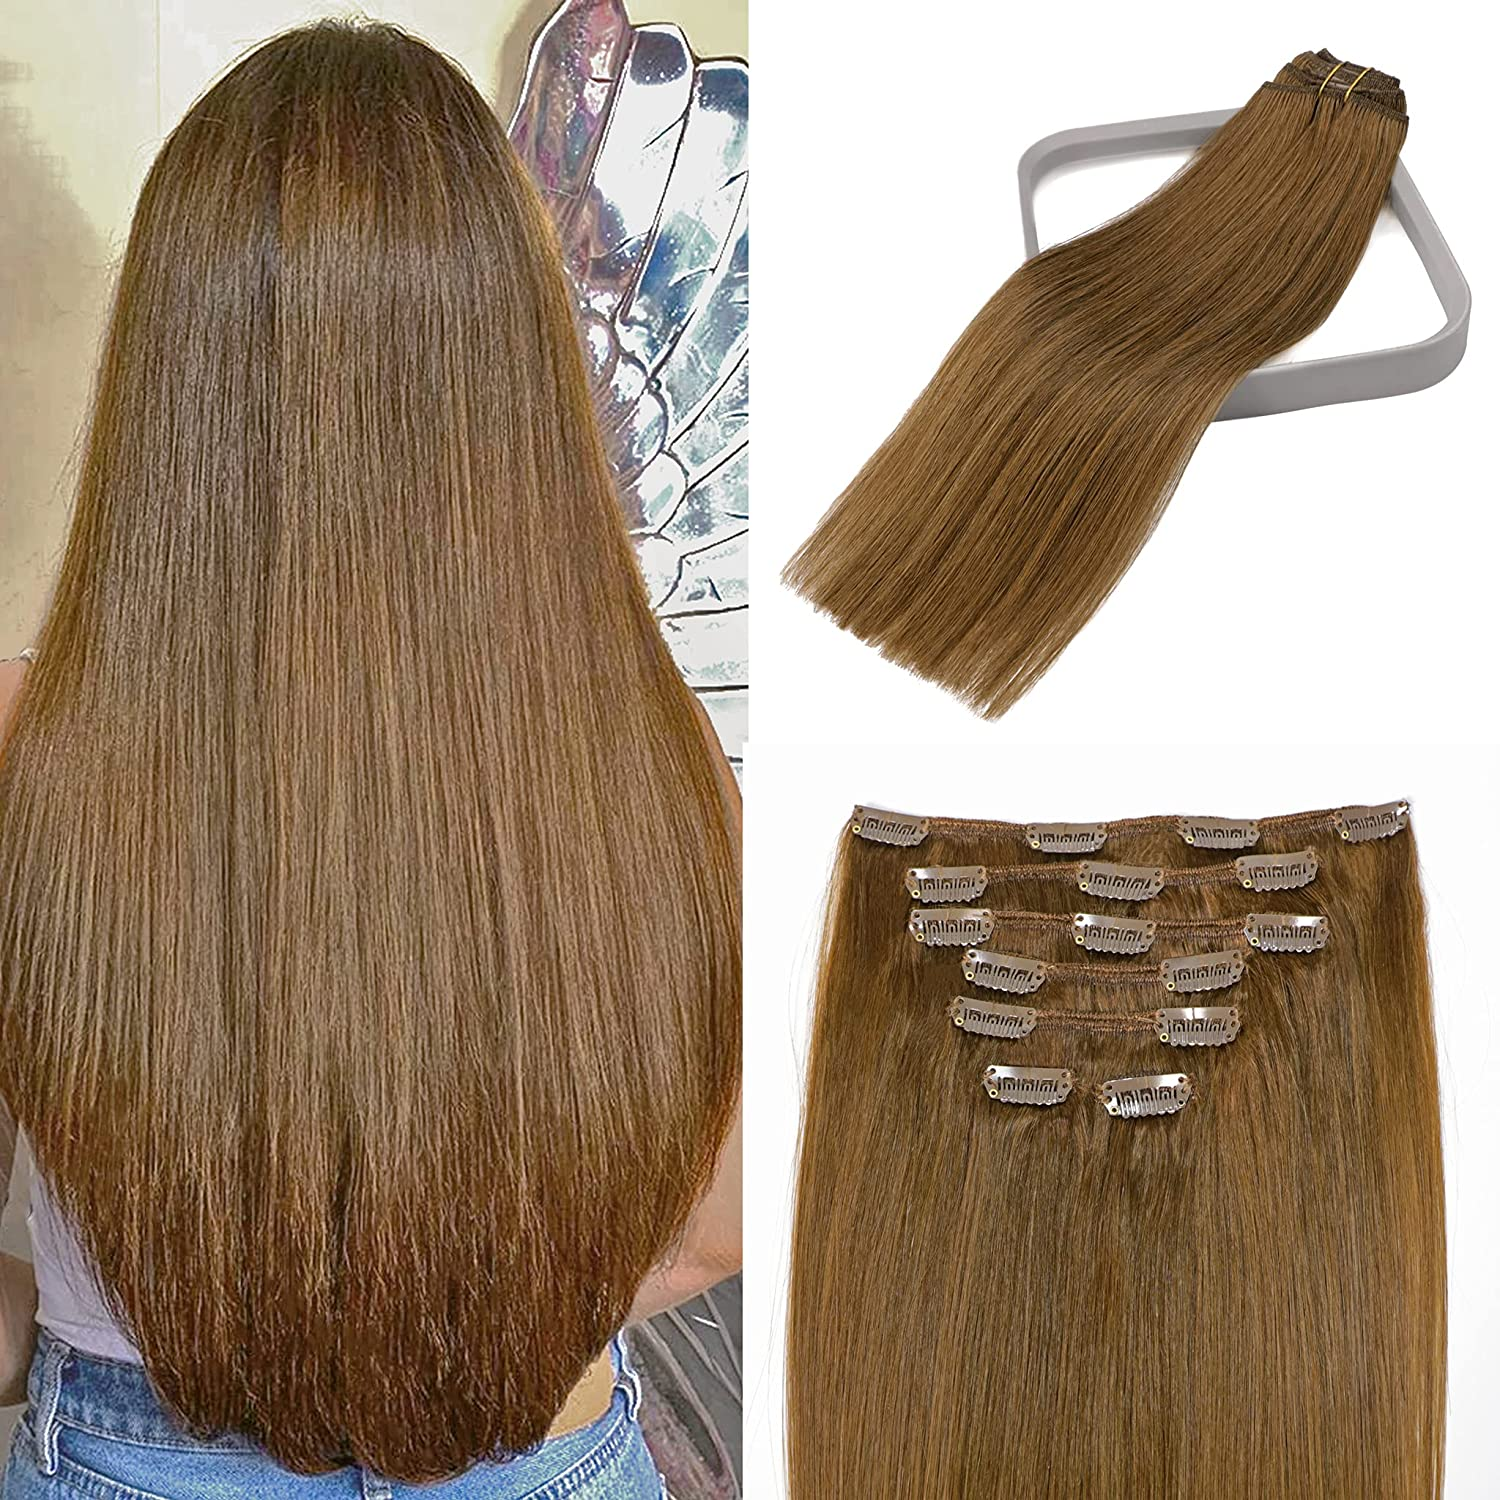 Clip Max 80% OFF in Hair Extensions Remy Medium Black For Max 68% OFF Light W Brown